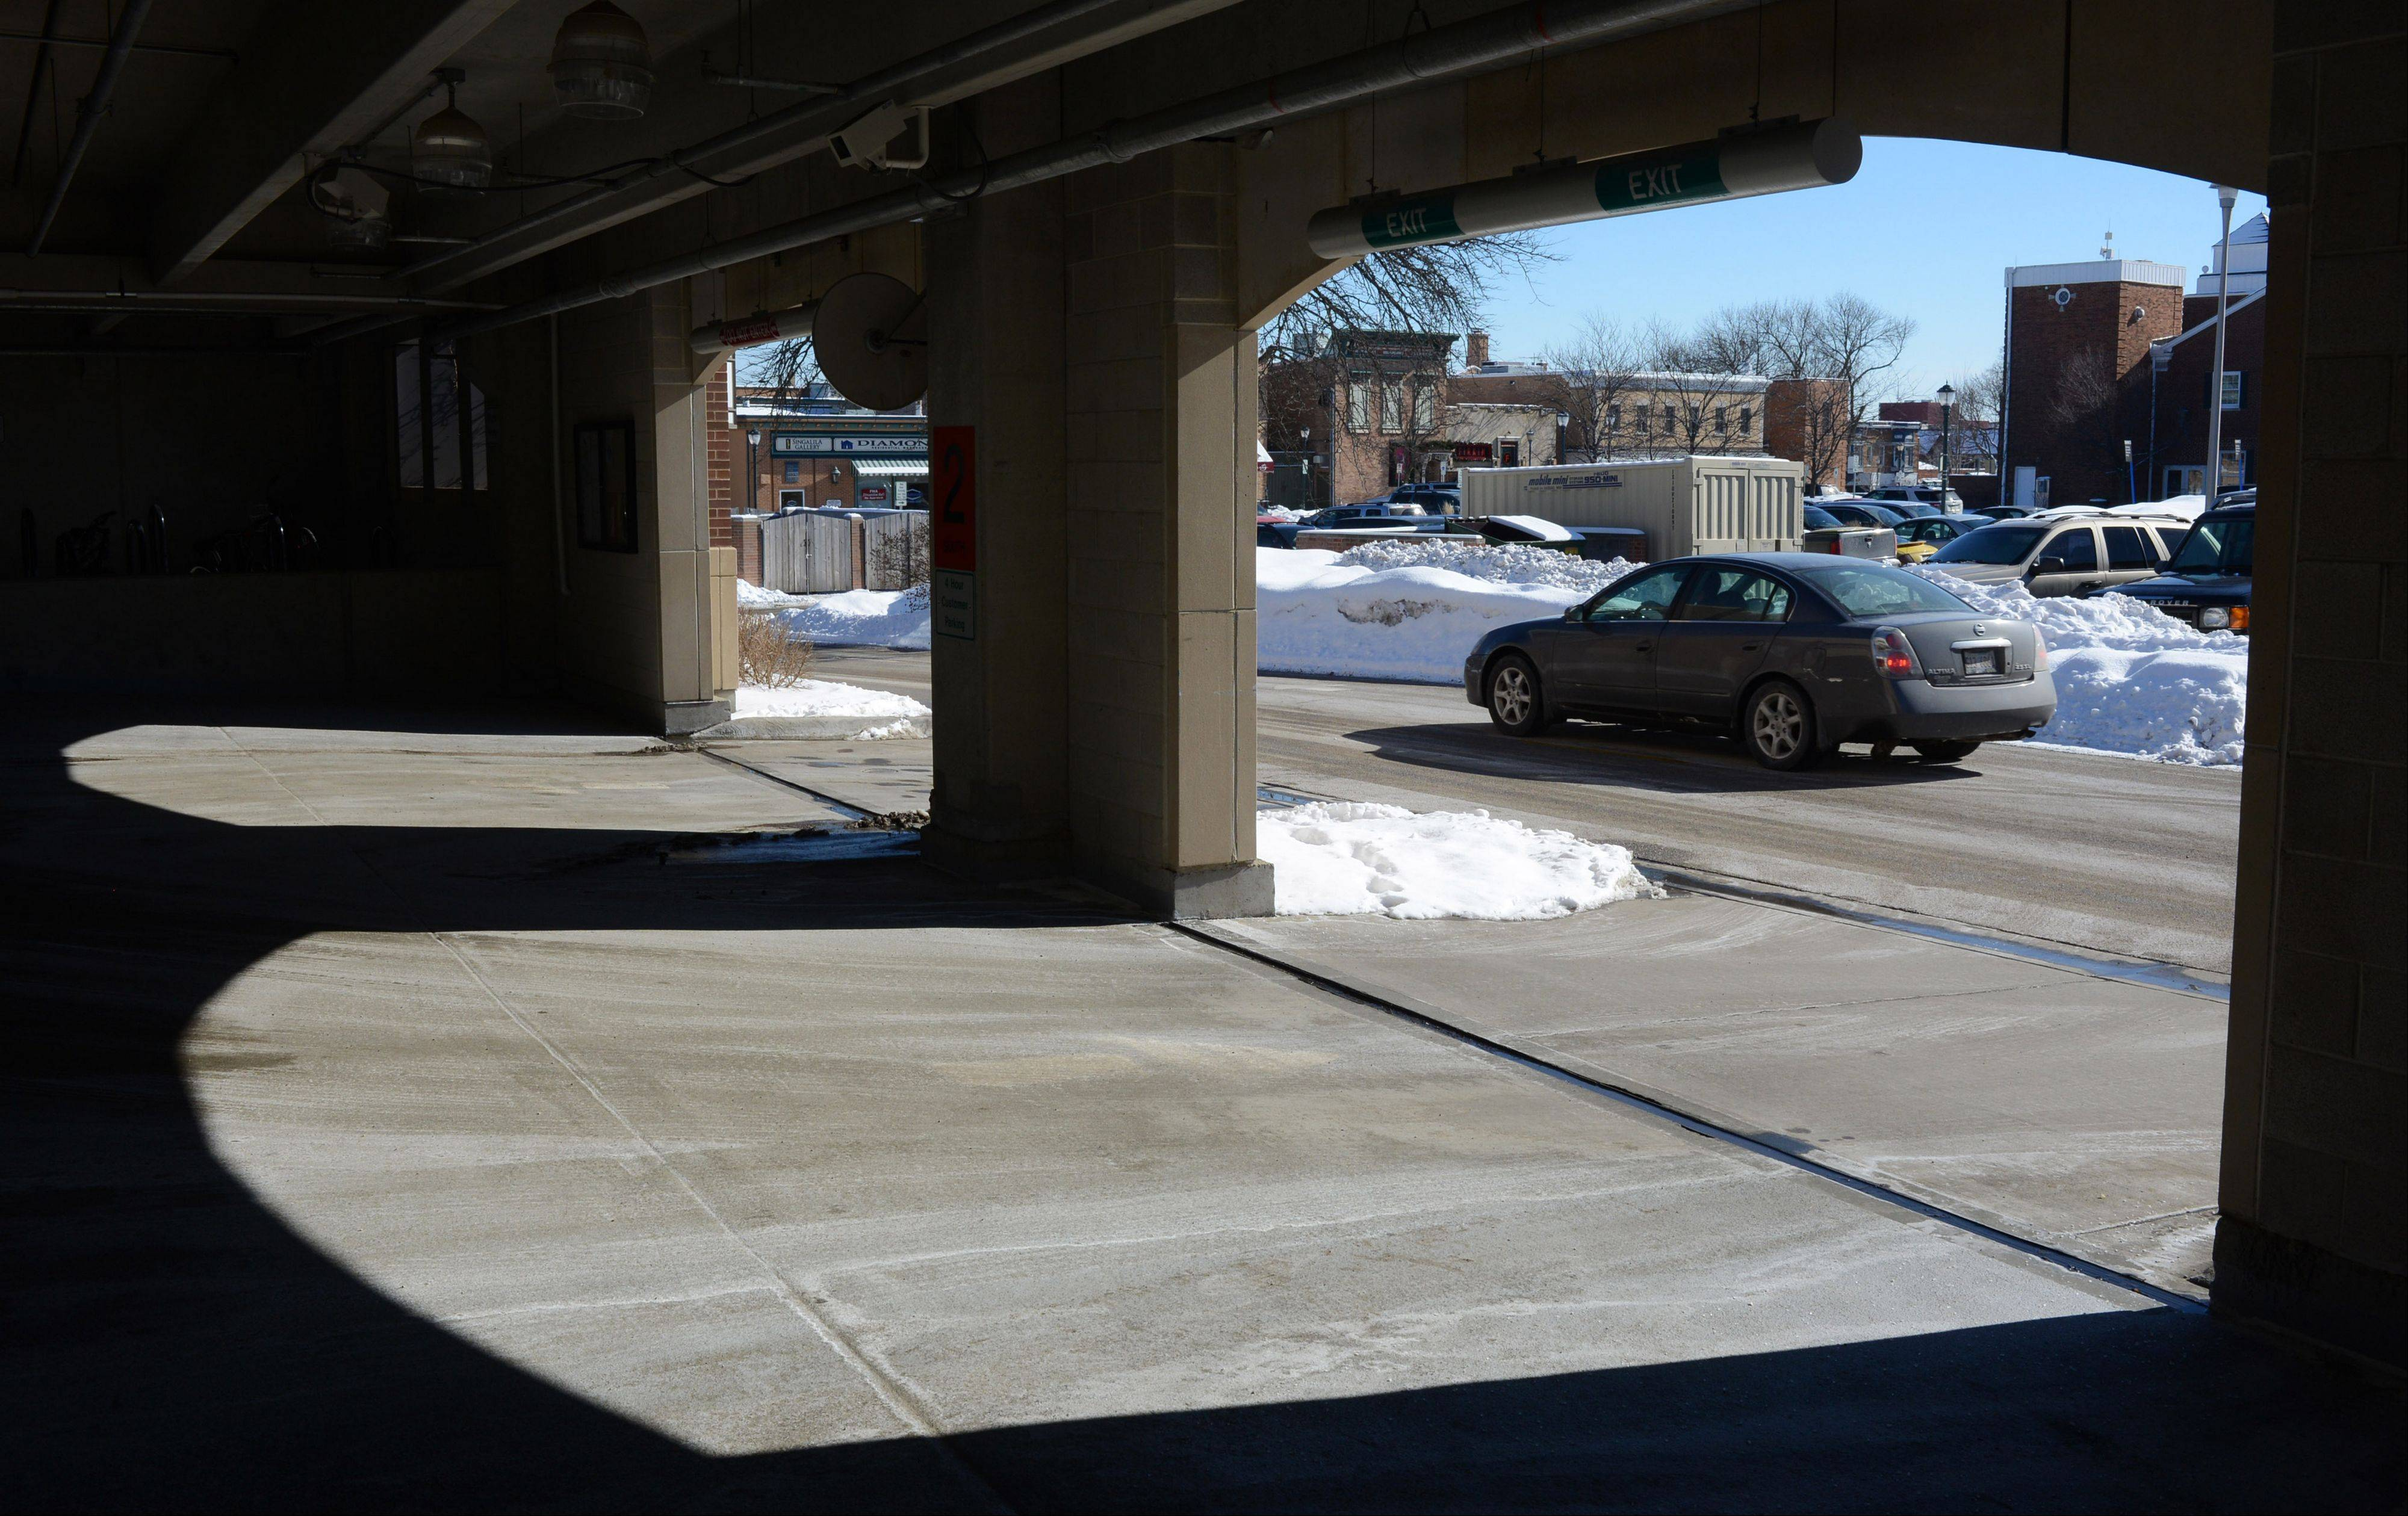 Money from a TIF extension was used to complete parking improvements, including a parking garage on the west side of Milwaukee Avenue to serve downtown Libertyville.